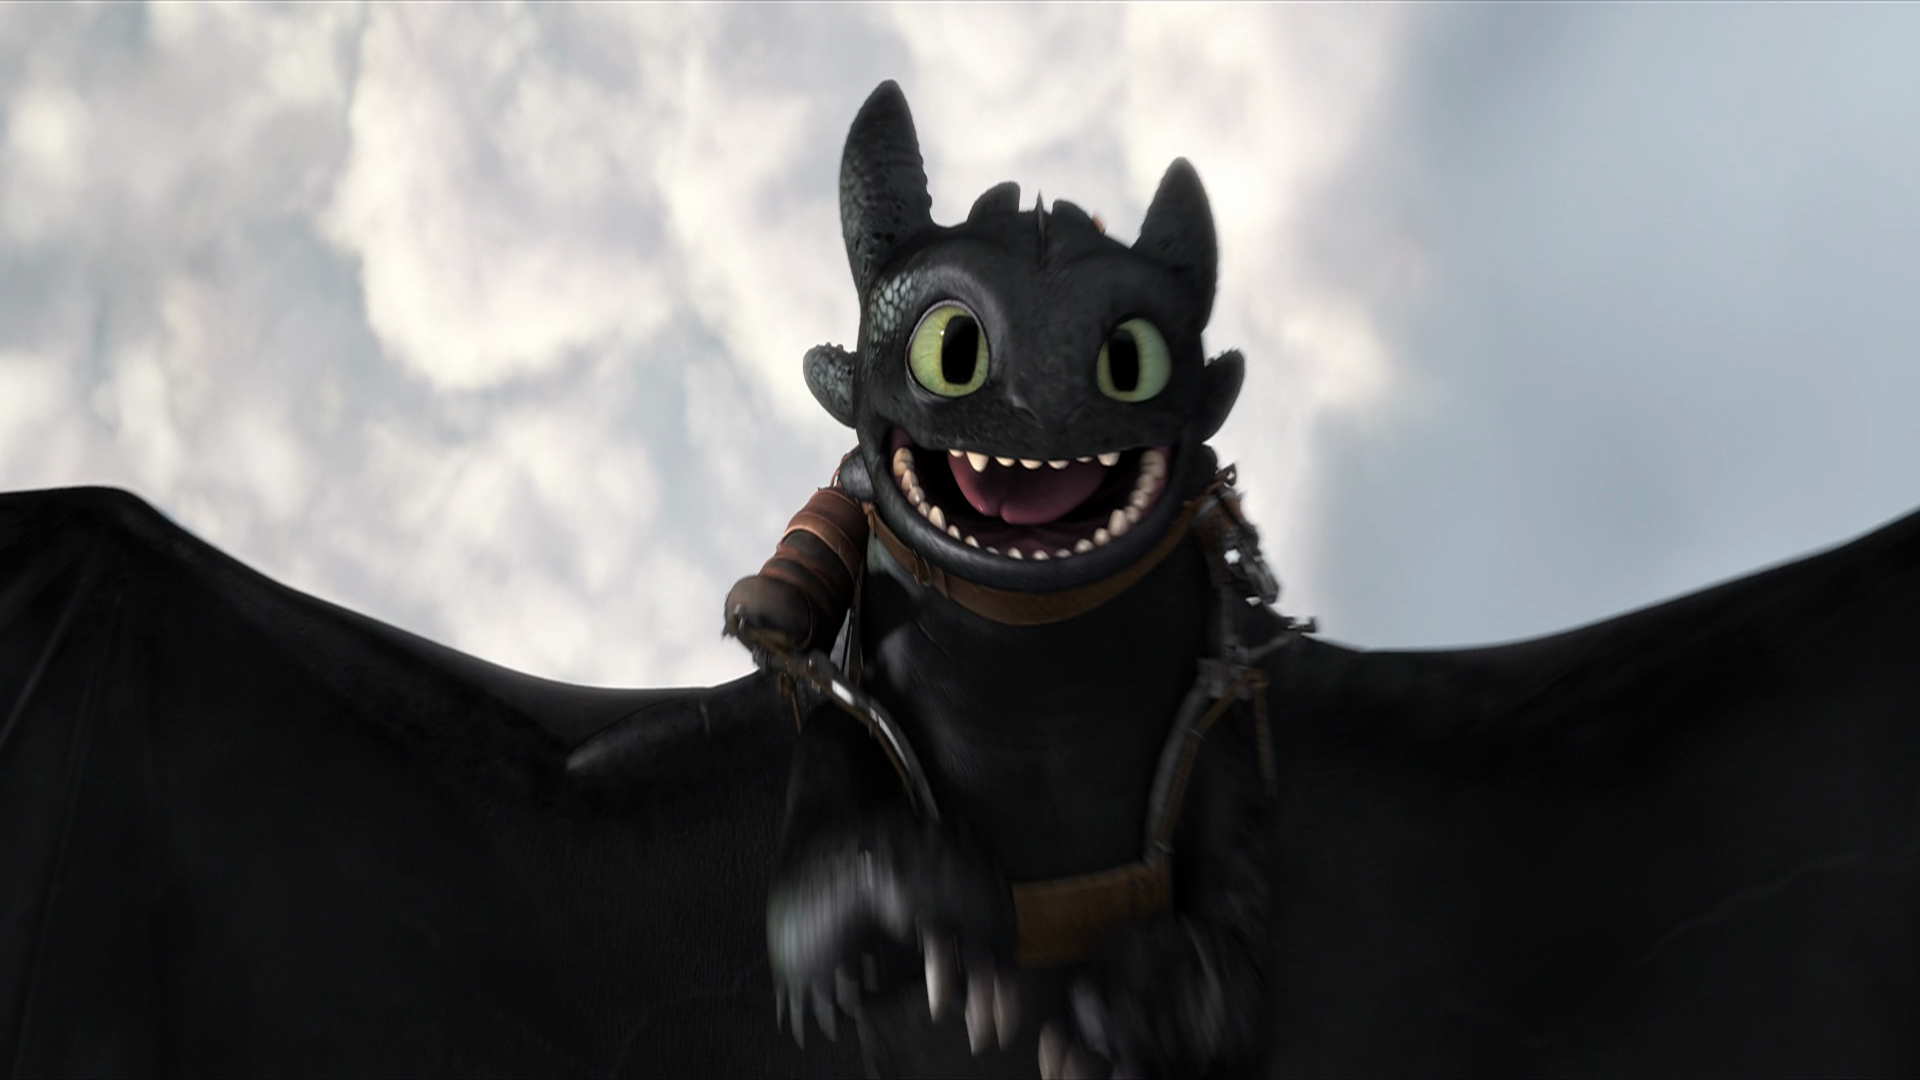 Free Download How To Train Your Dragon 2 Full Hd Wallpaper